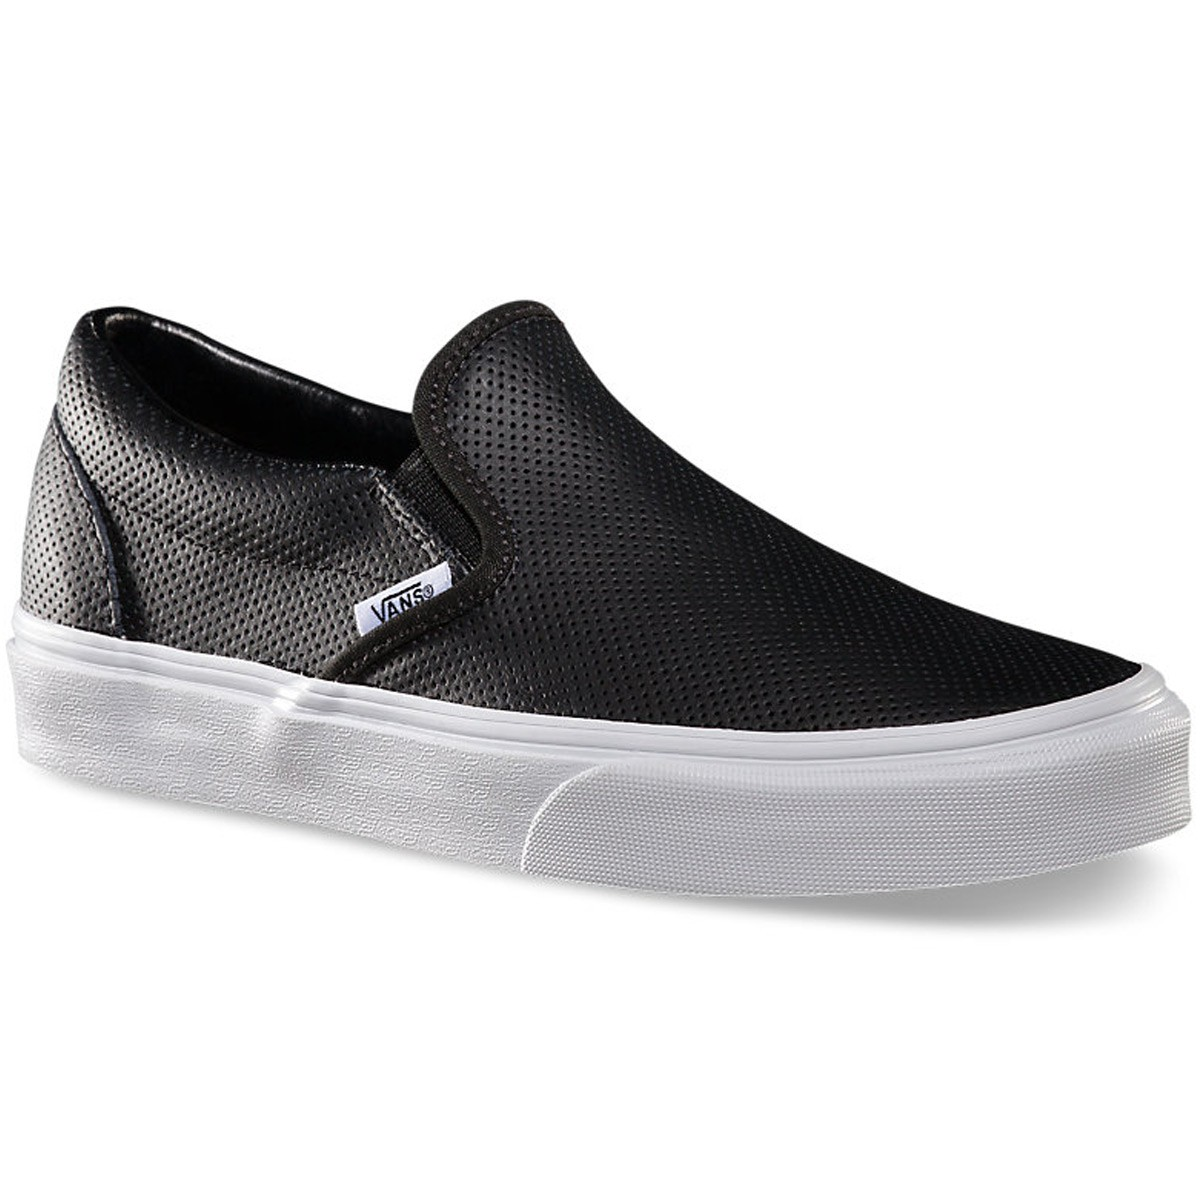 vans perf leather slip on shoes